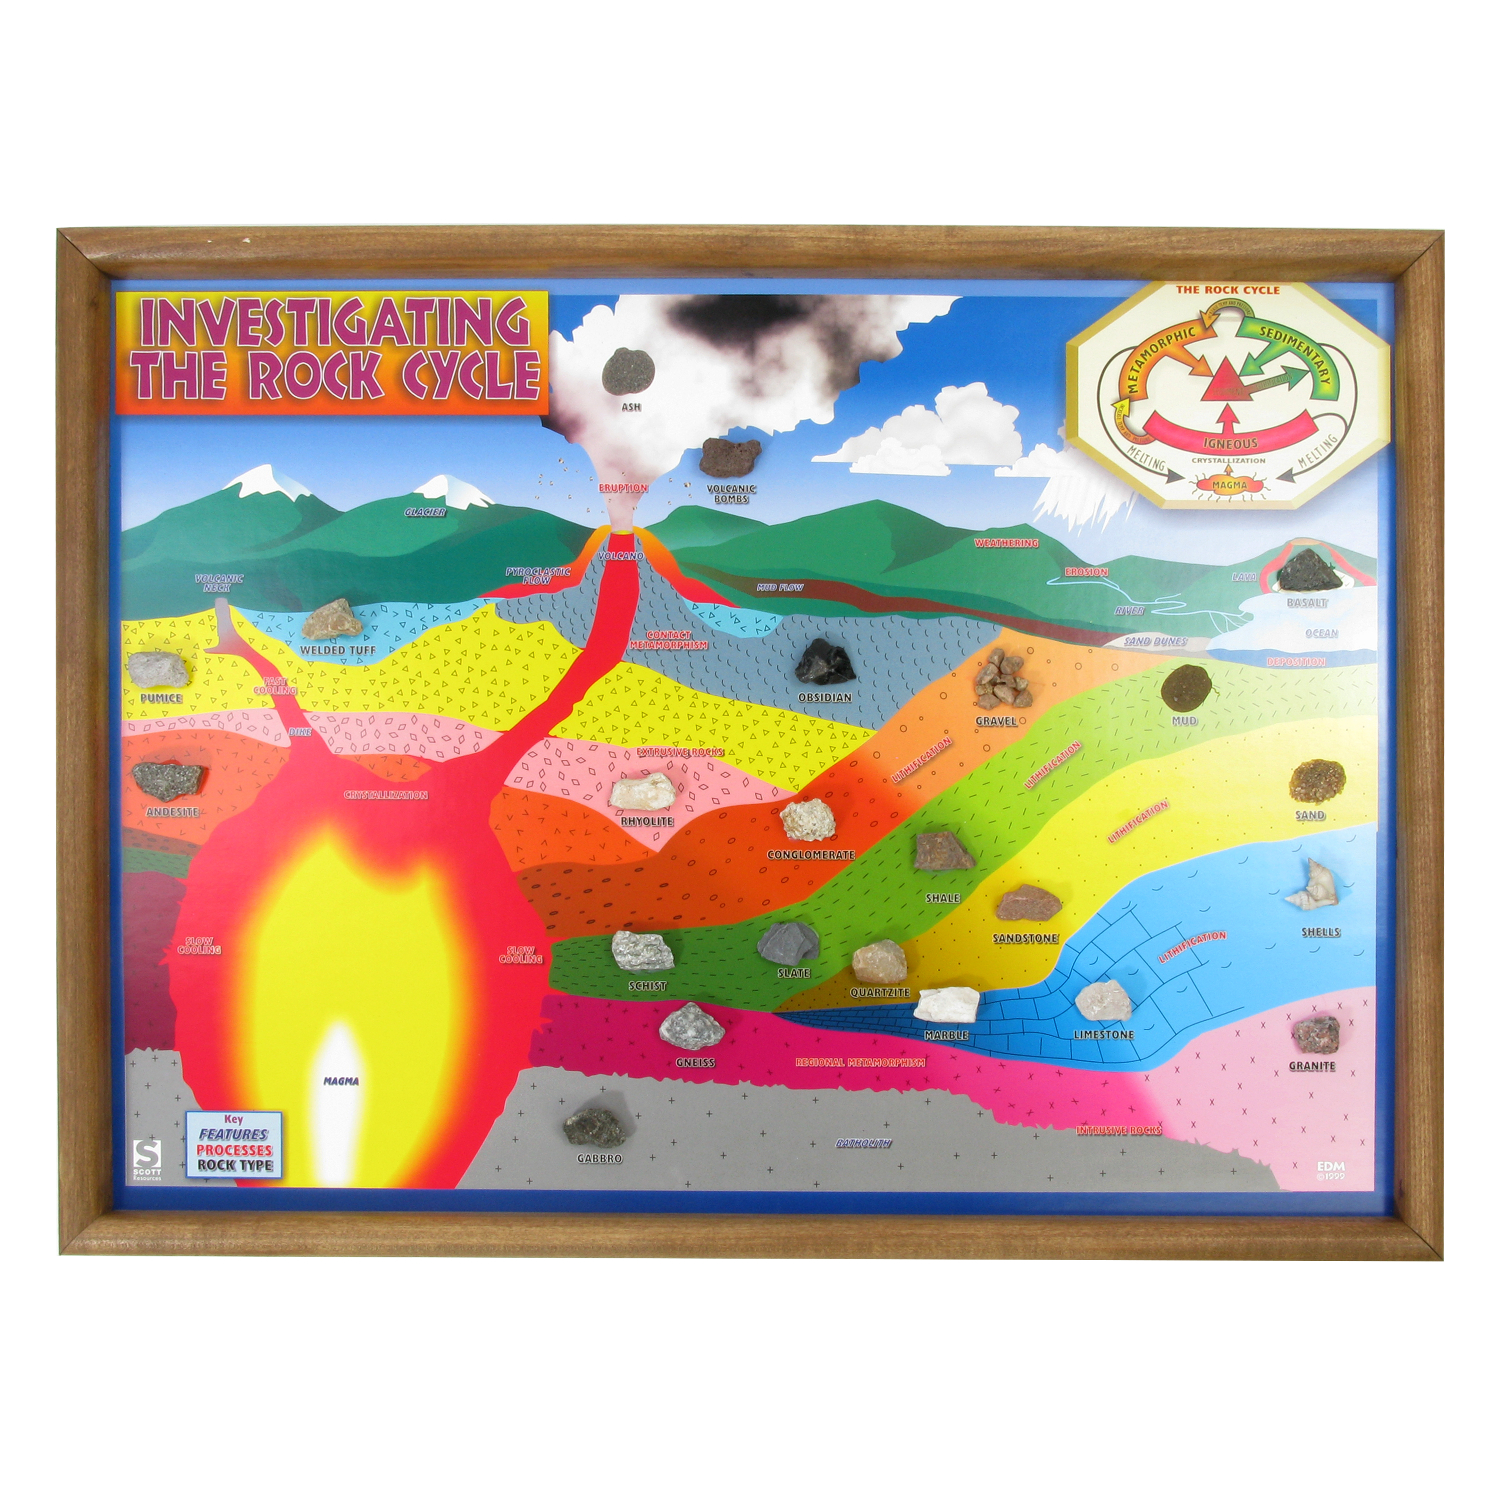 Scott Resources Amp Hubbard Scientific Rock Cycle Chart Only